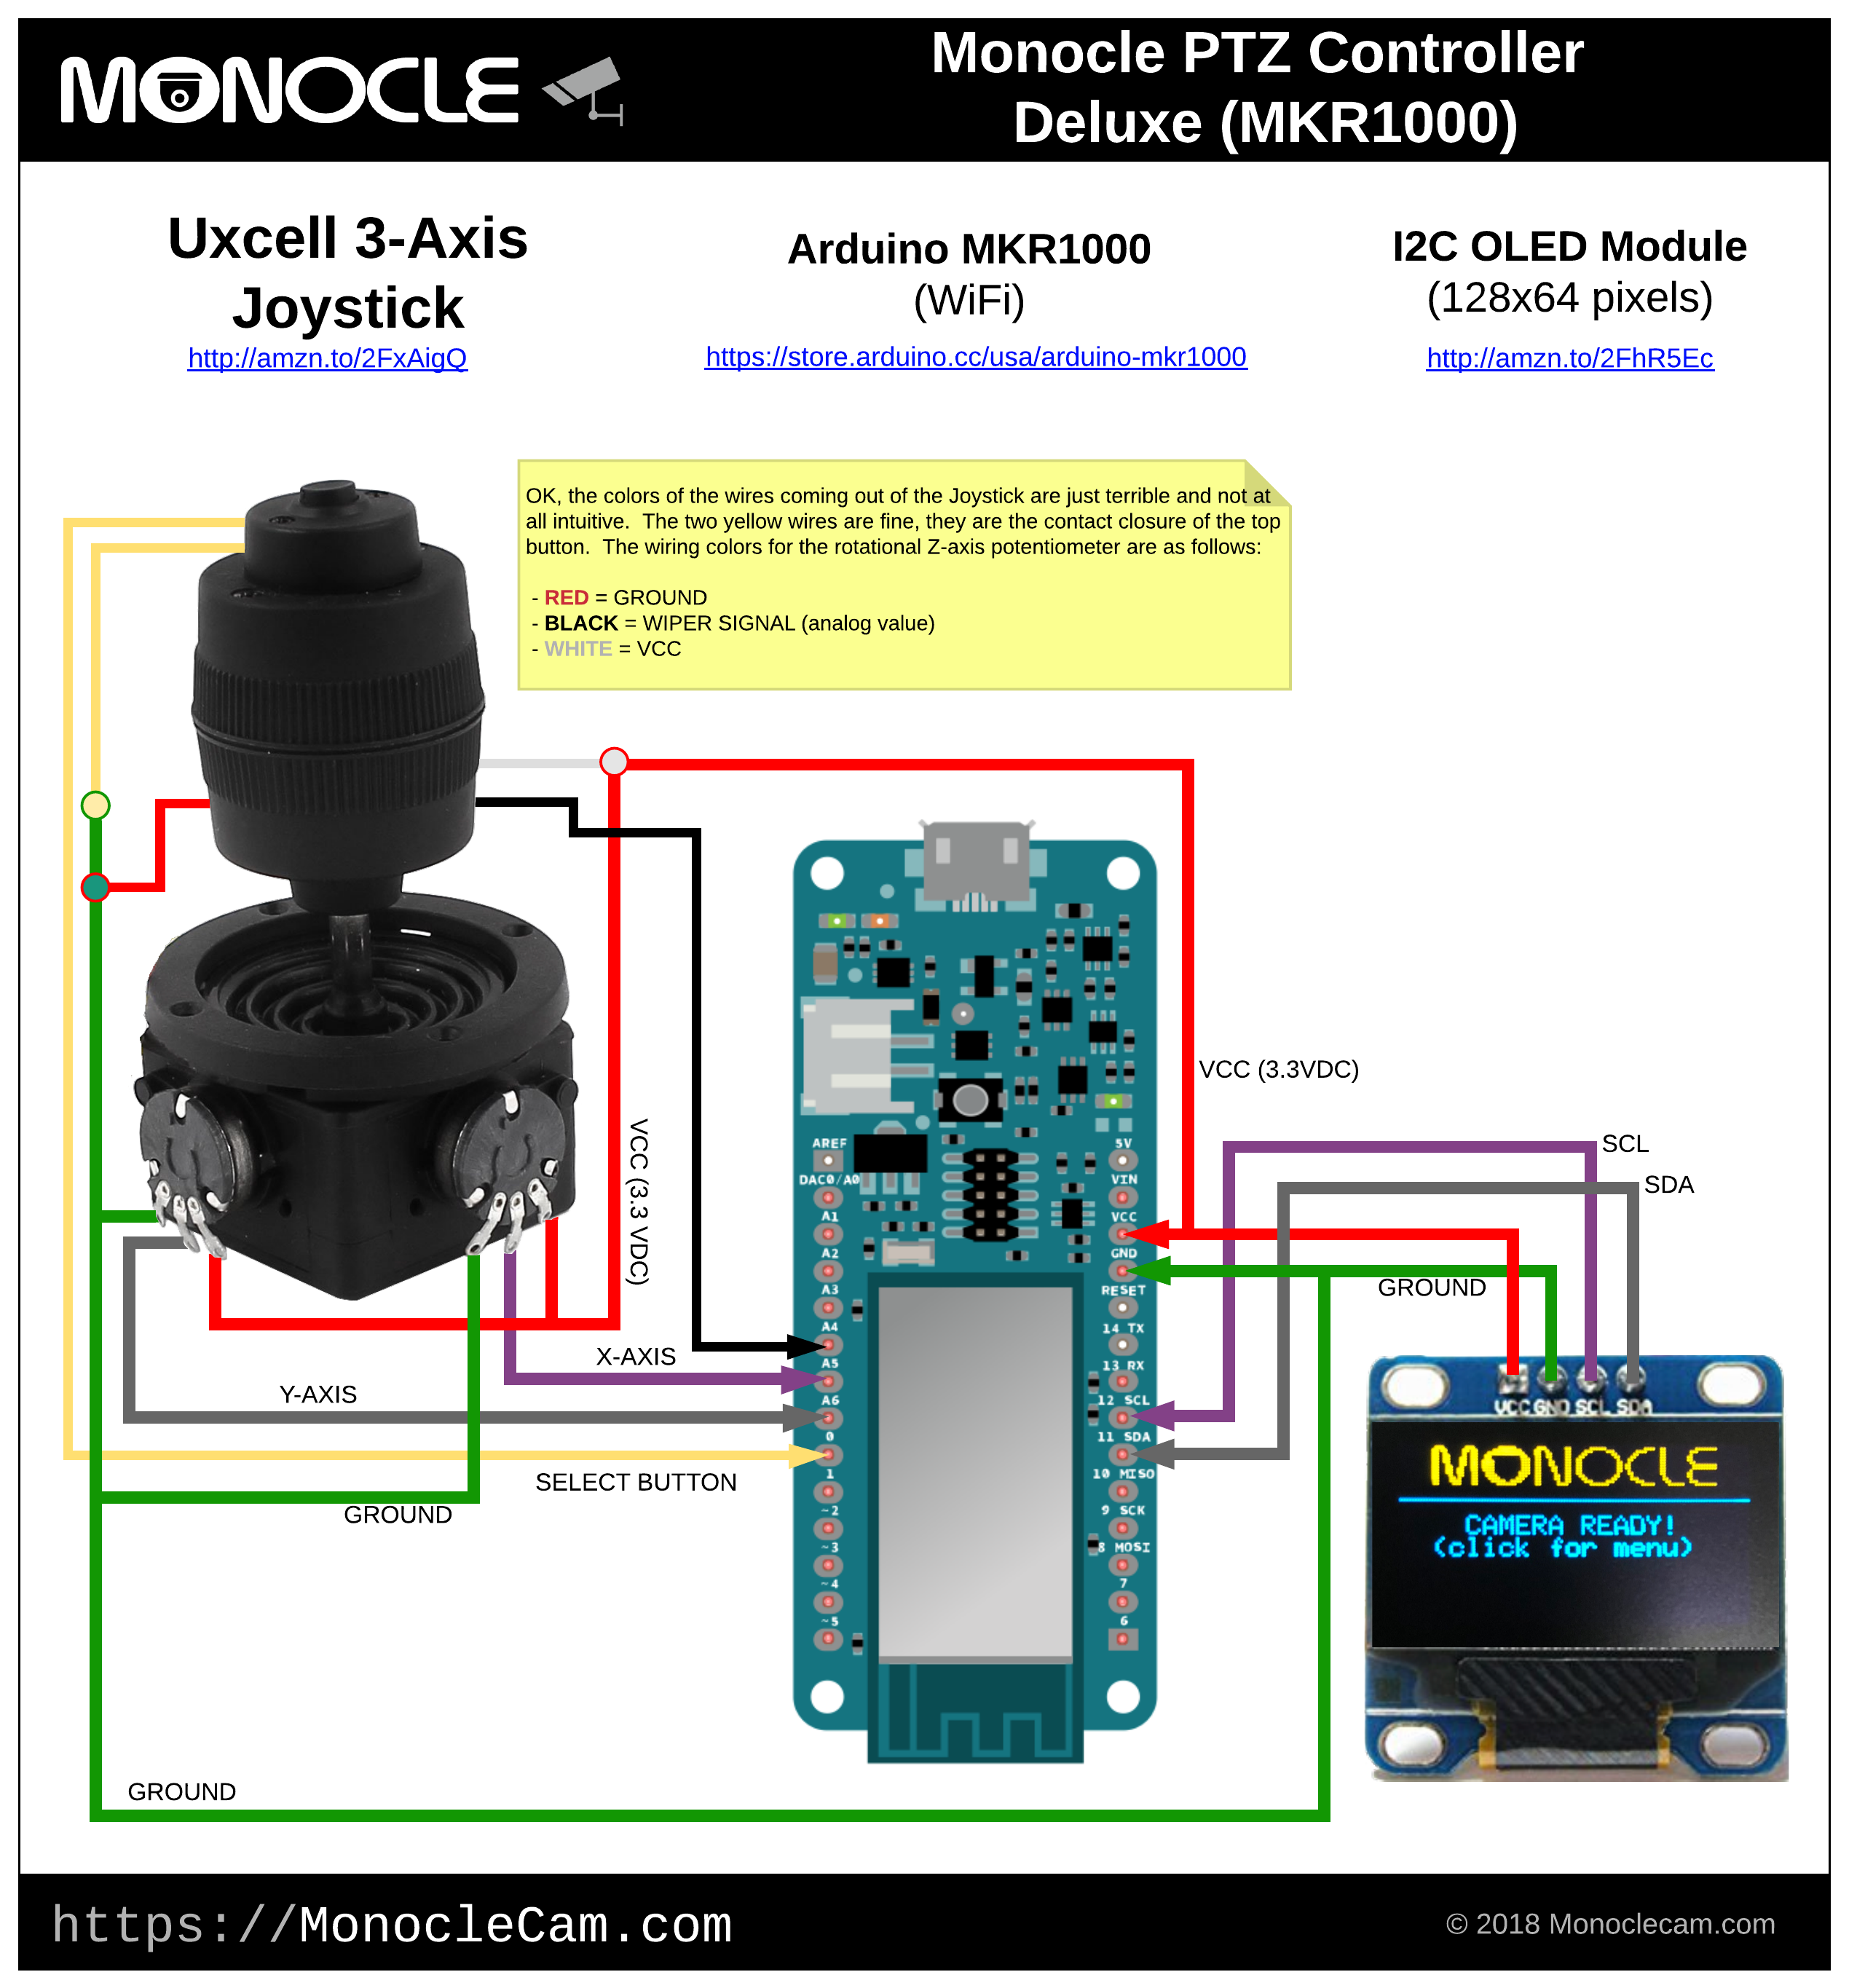 Monocle ptzcontroller deluxe mkr1000 o7pqbmdmjr